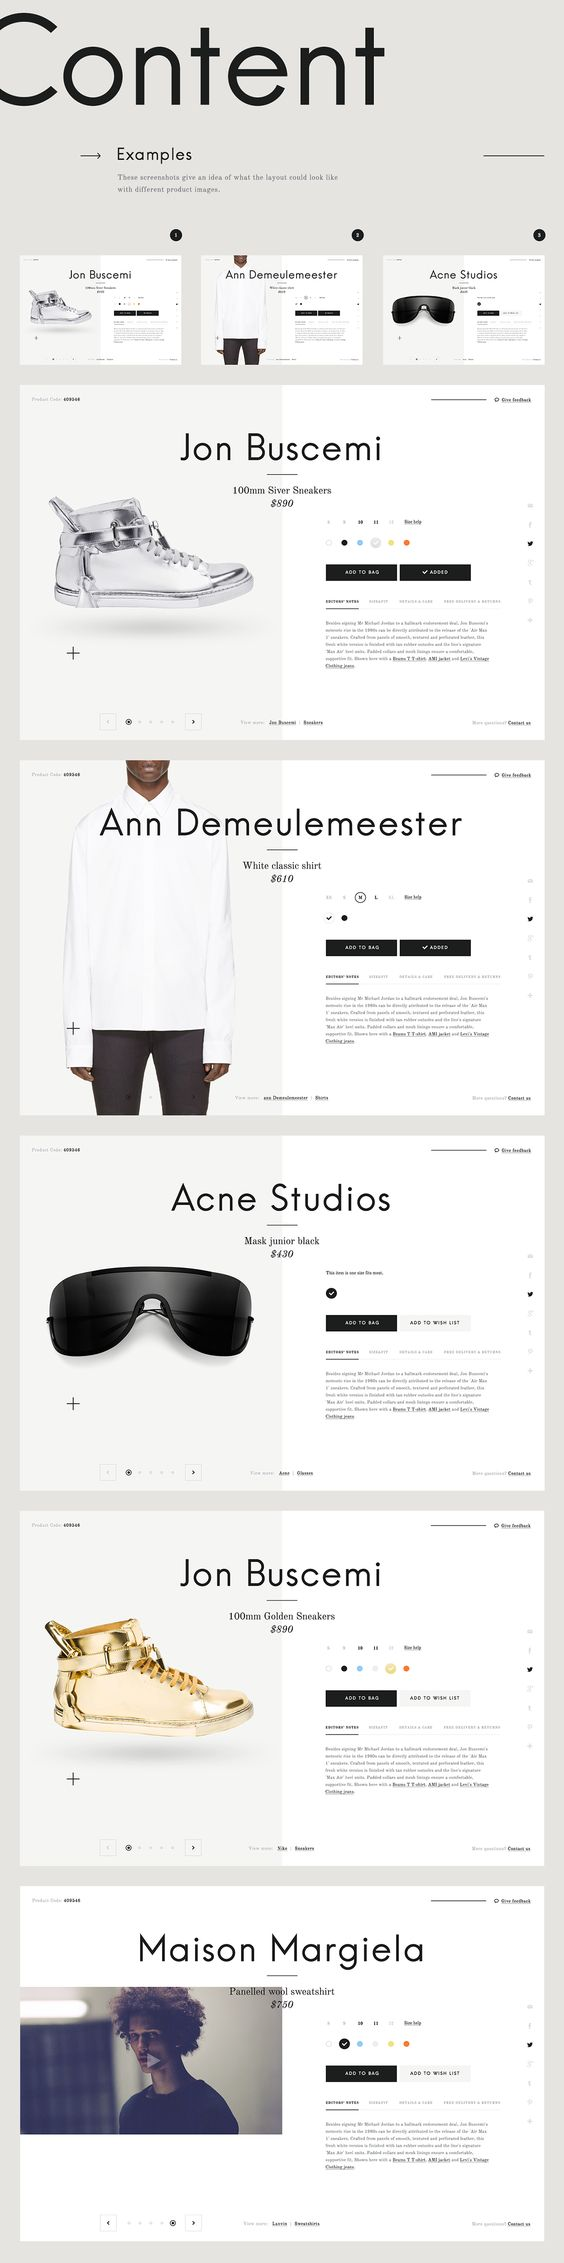 Design inspiration<br> for e-Commerce